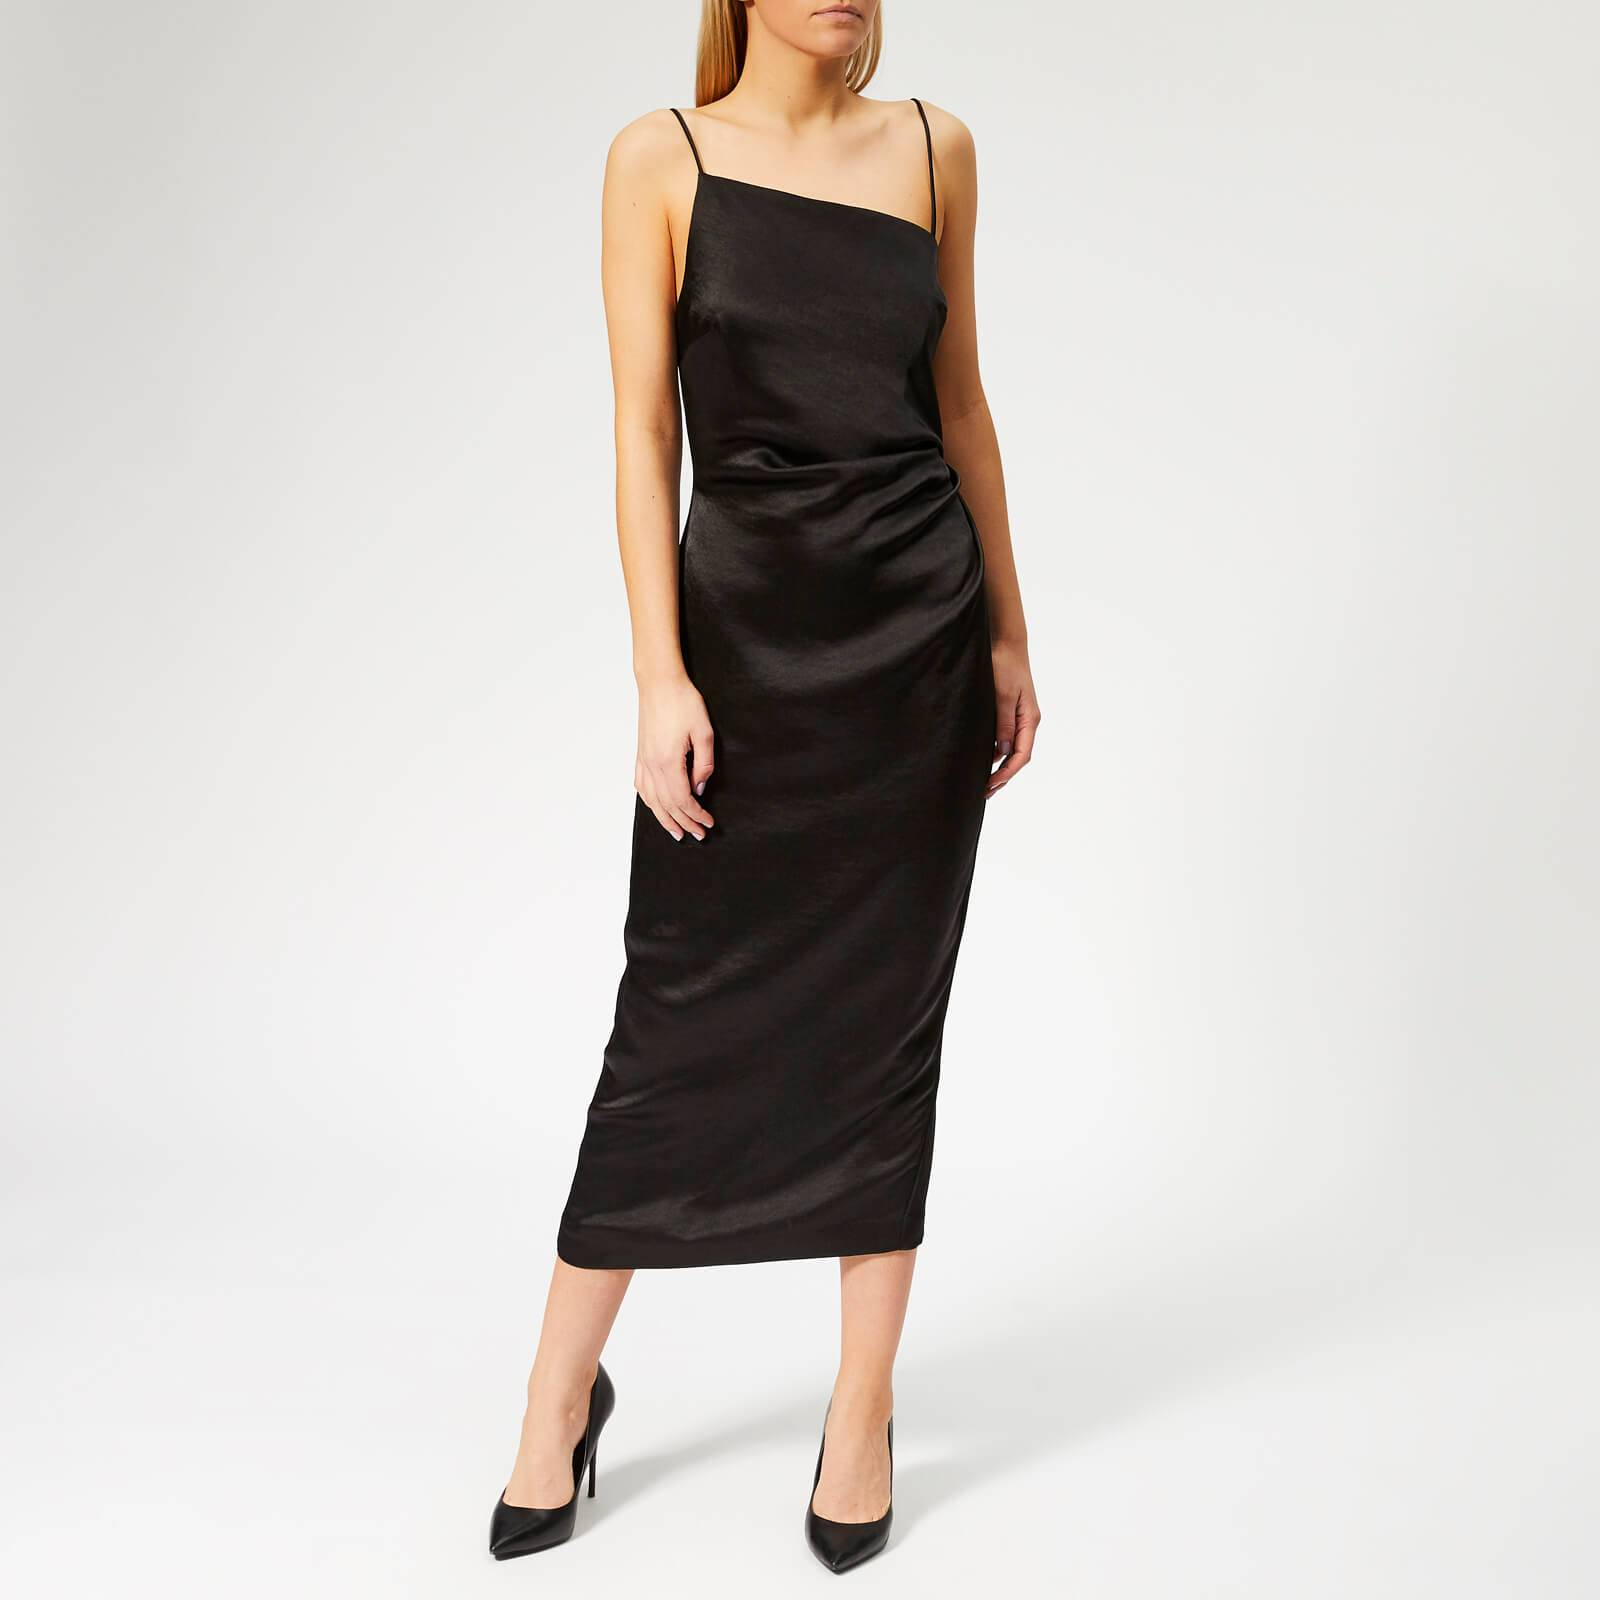 Bec & Bridge Women's Claudia Asymmetrical Dress - Black - UK 6 - Black